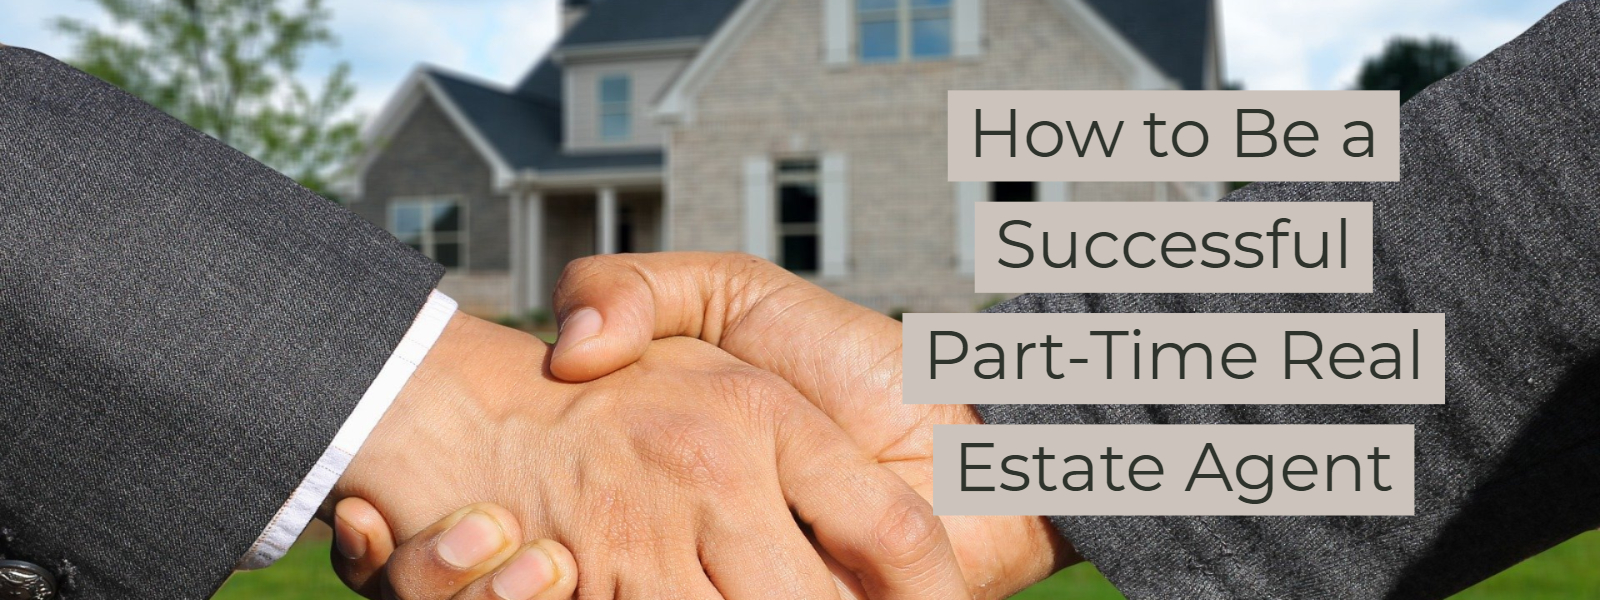 """How to Be a Successful Part-Time Real Estate Agent"" No."